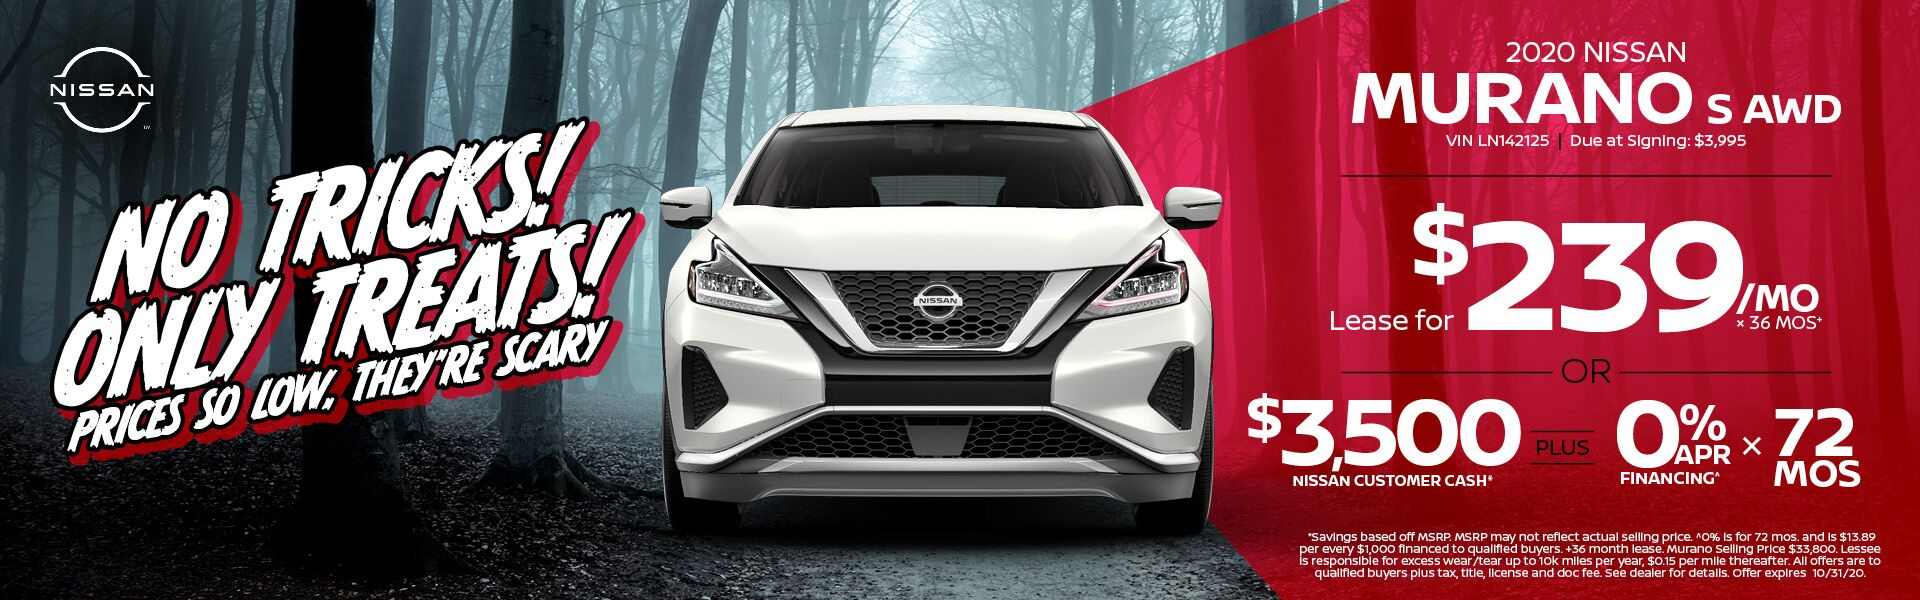 2020 Murano Lease for $239/mo